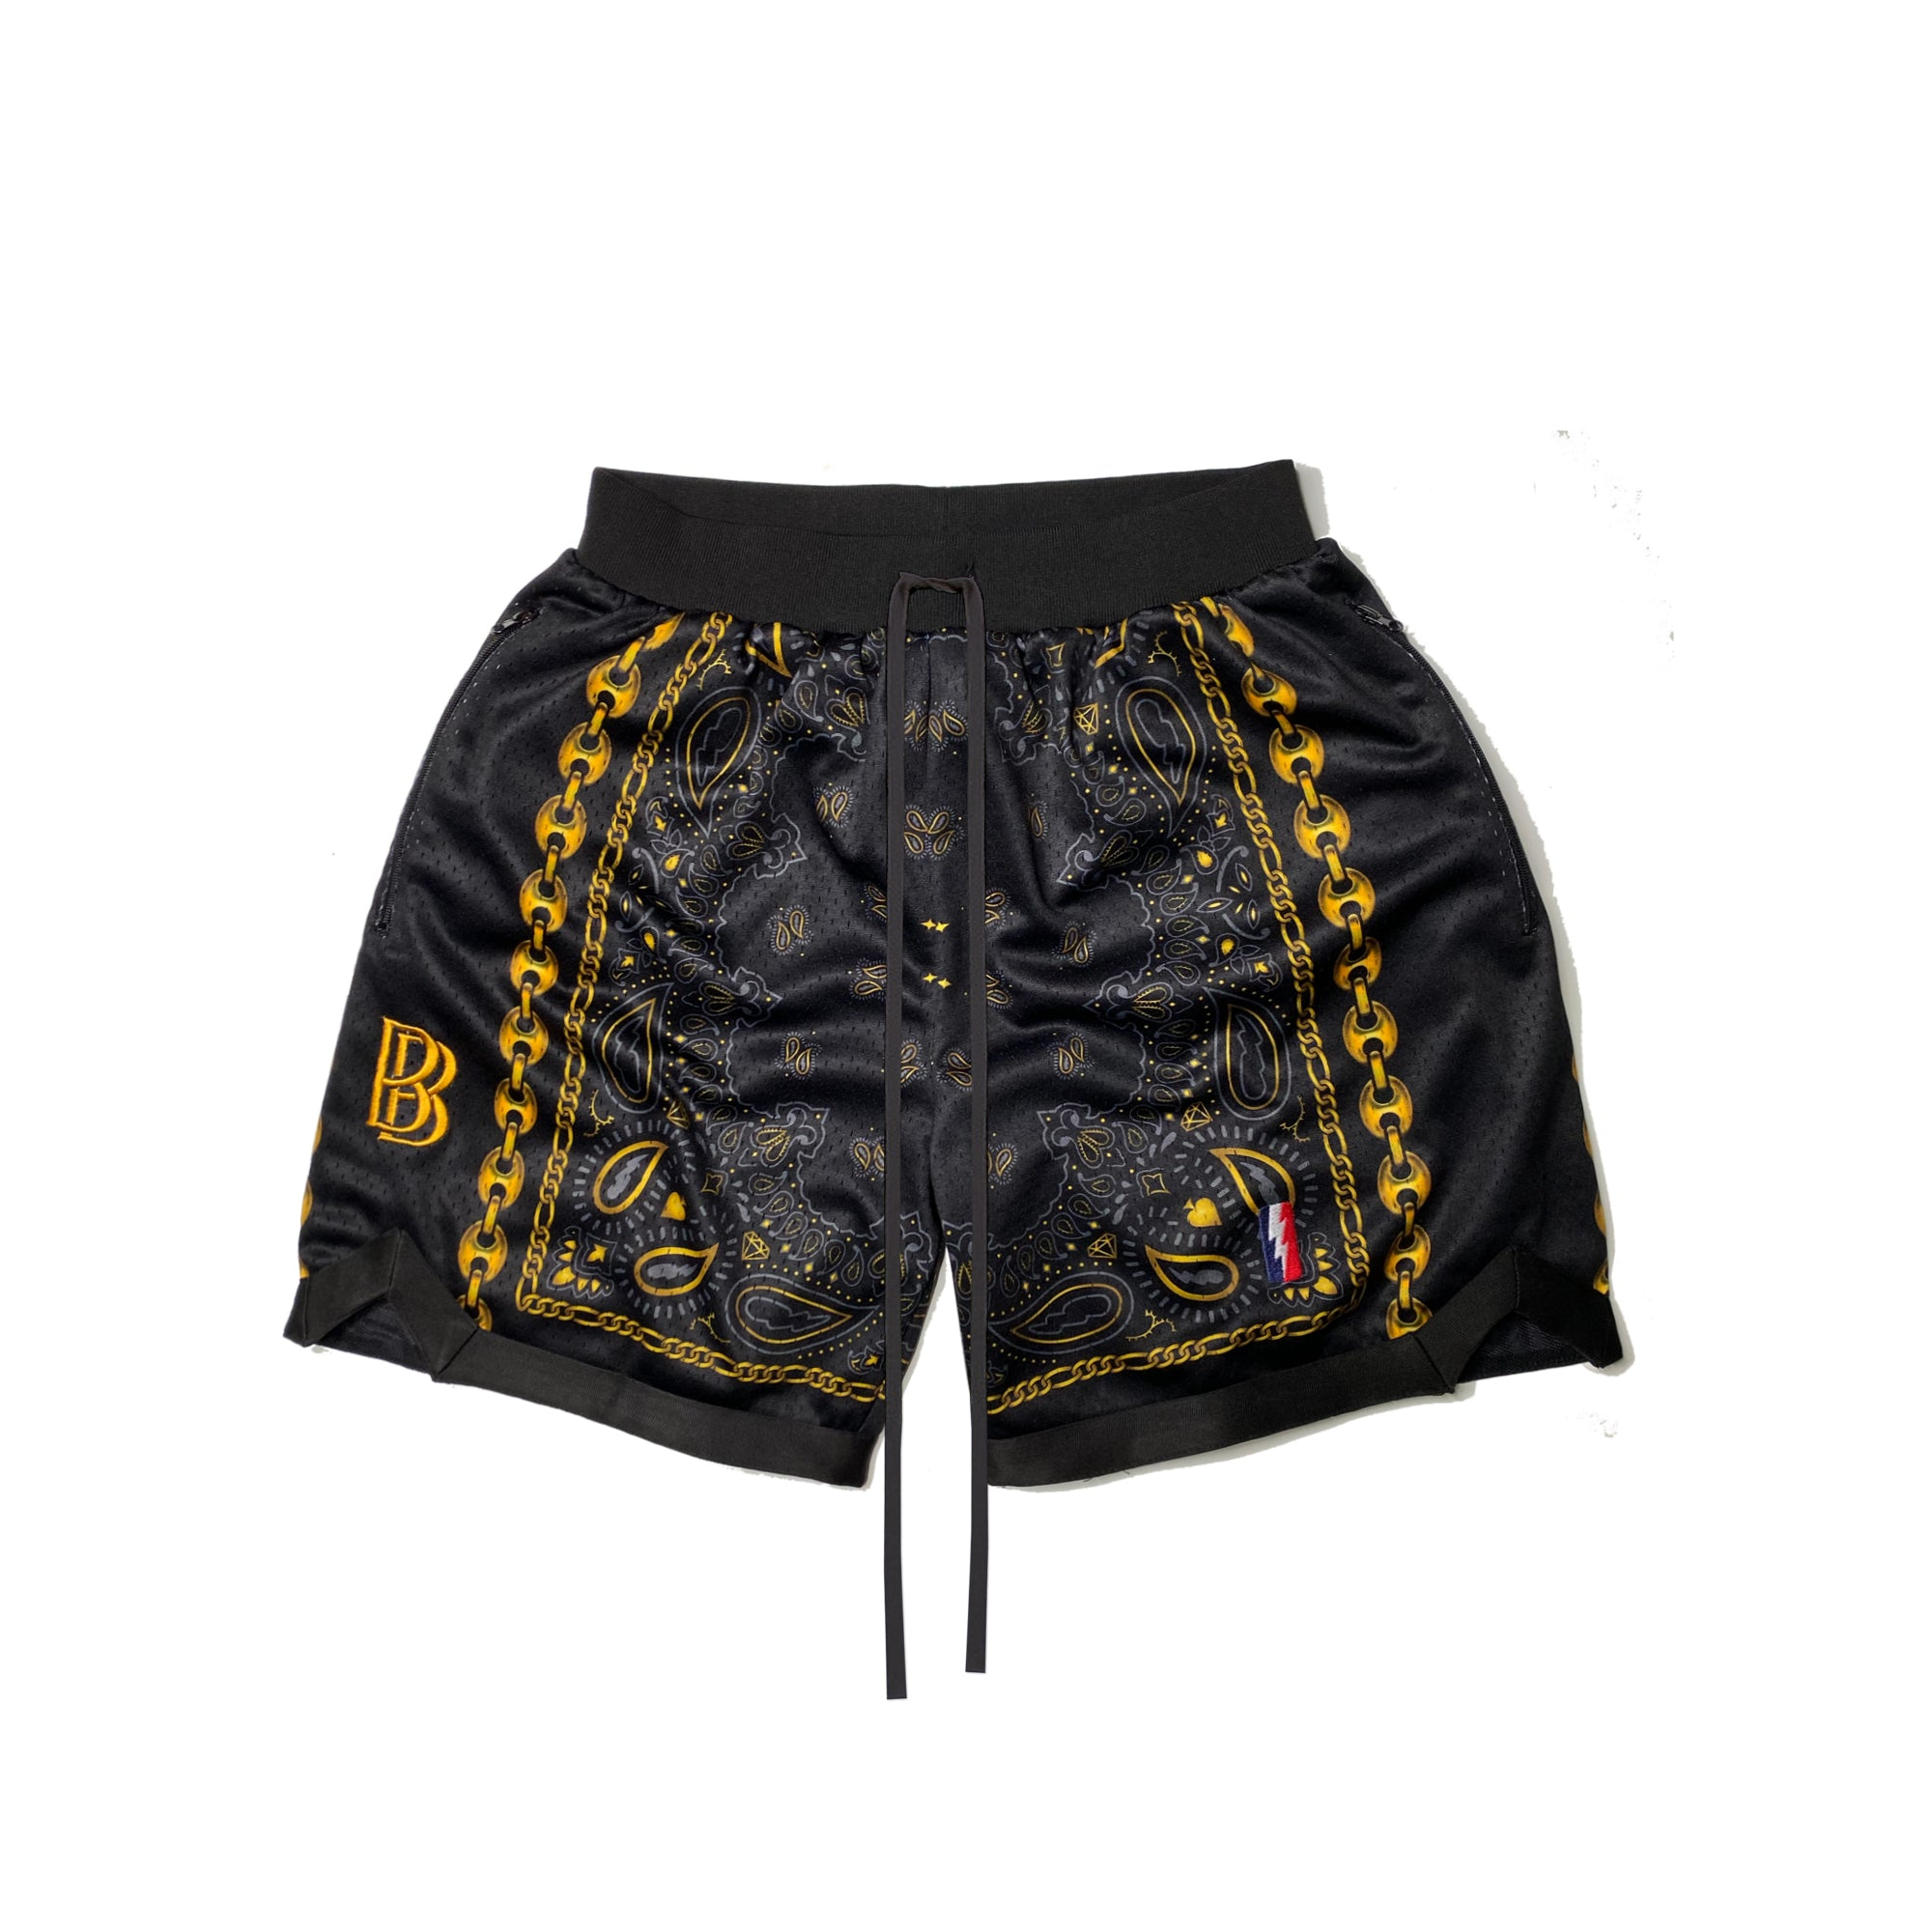 BB SELECT SWINGMAN SHORTS